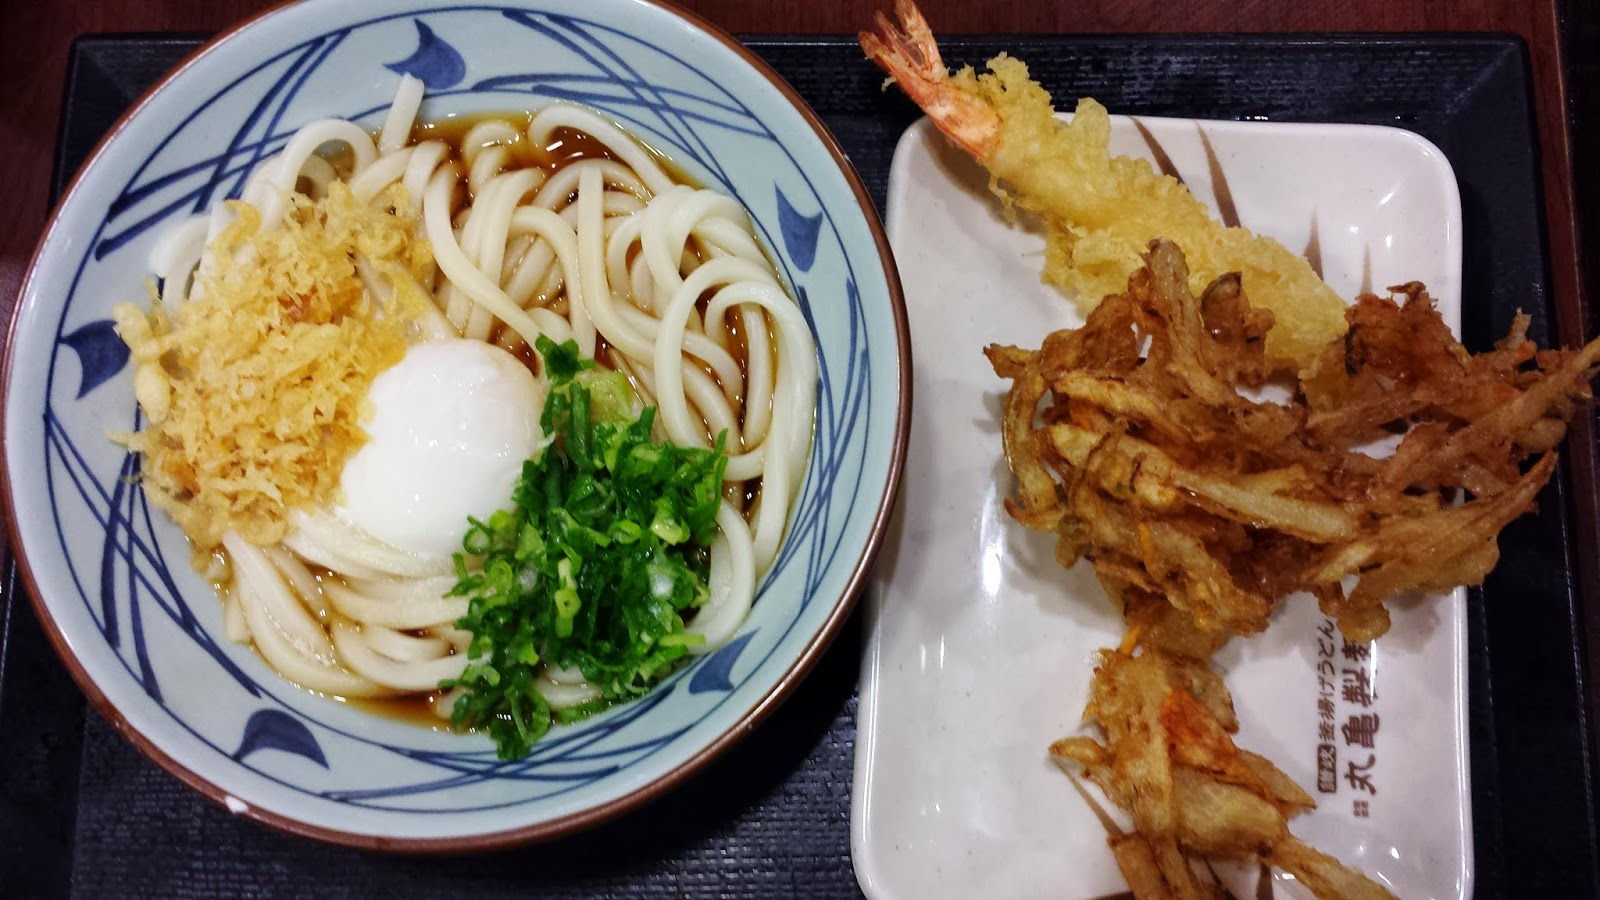 Yummy marukame udon and tempura. Photo: Just J